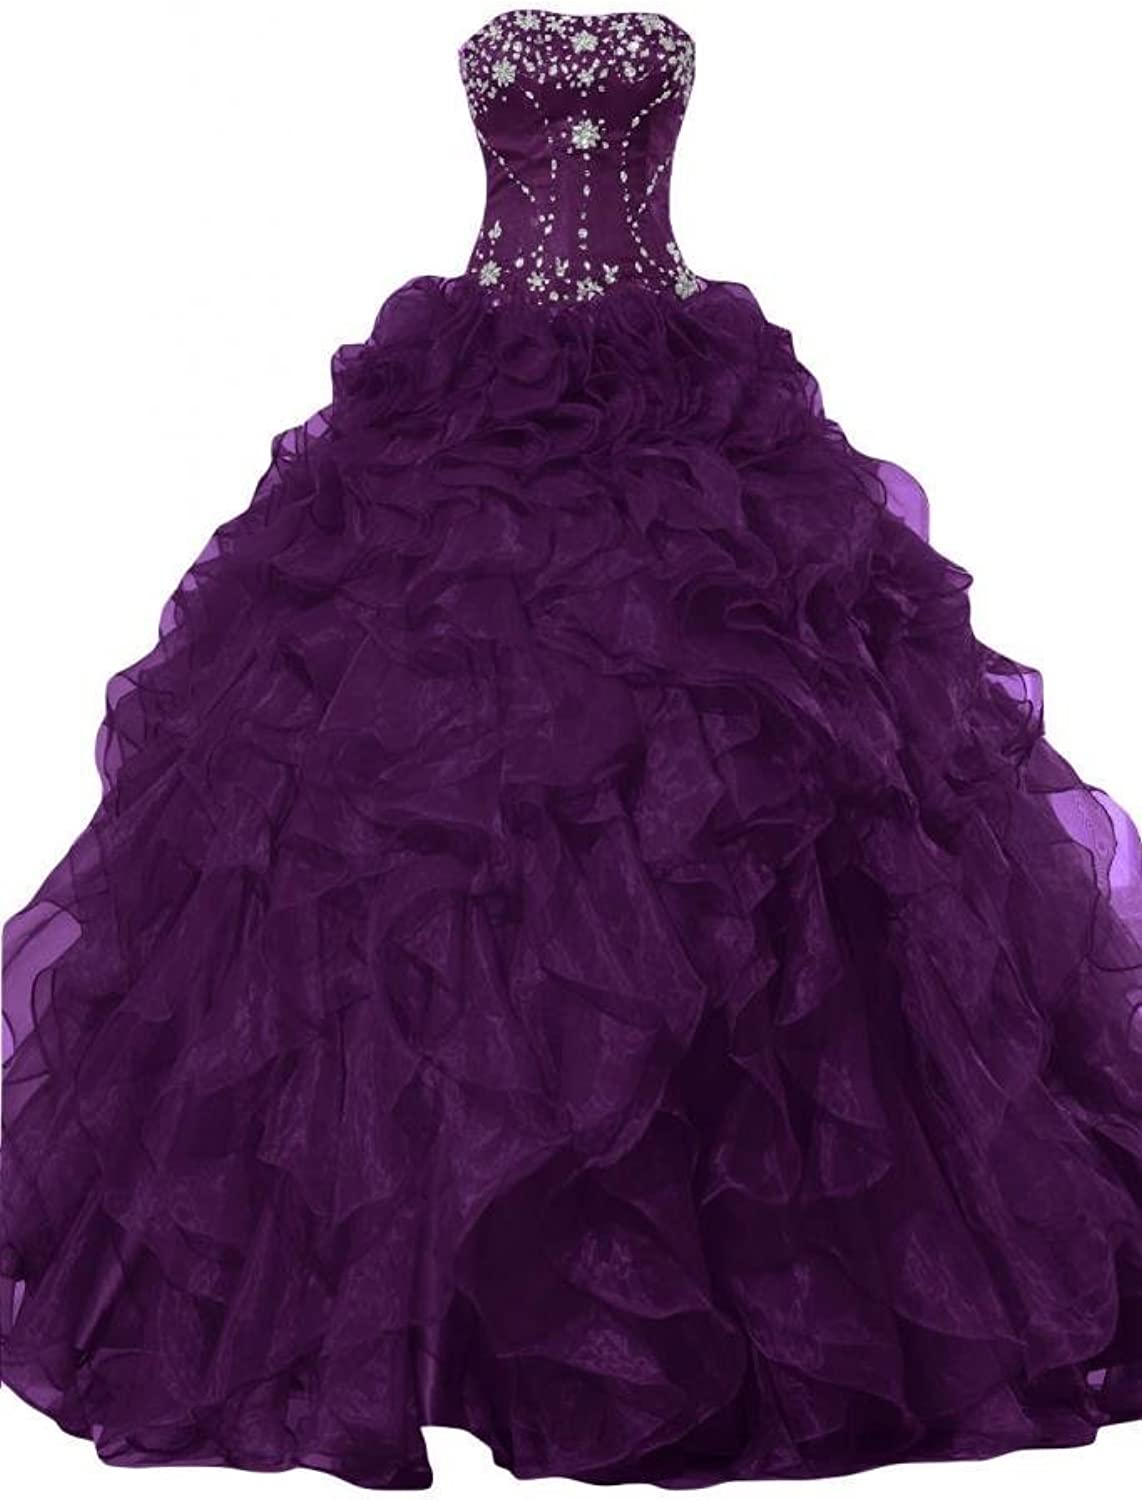 Y&C Women's Strapless Crystal Ruffles Quinceanera Dress